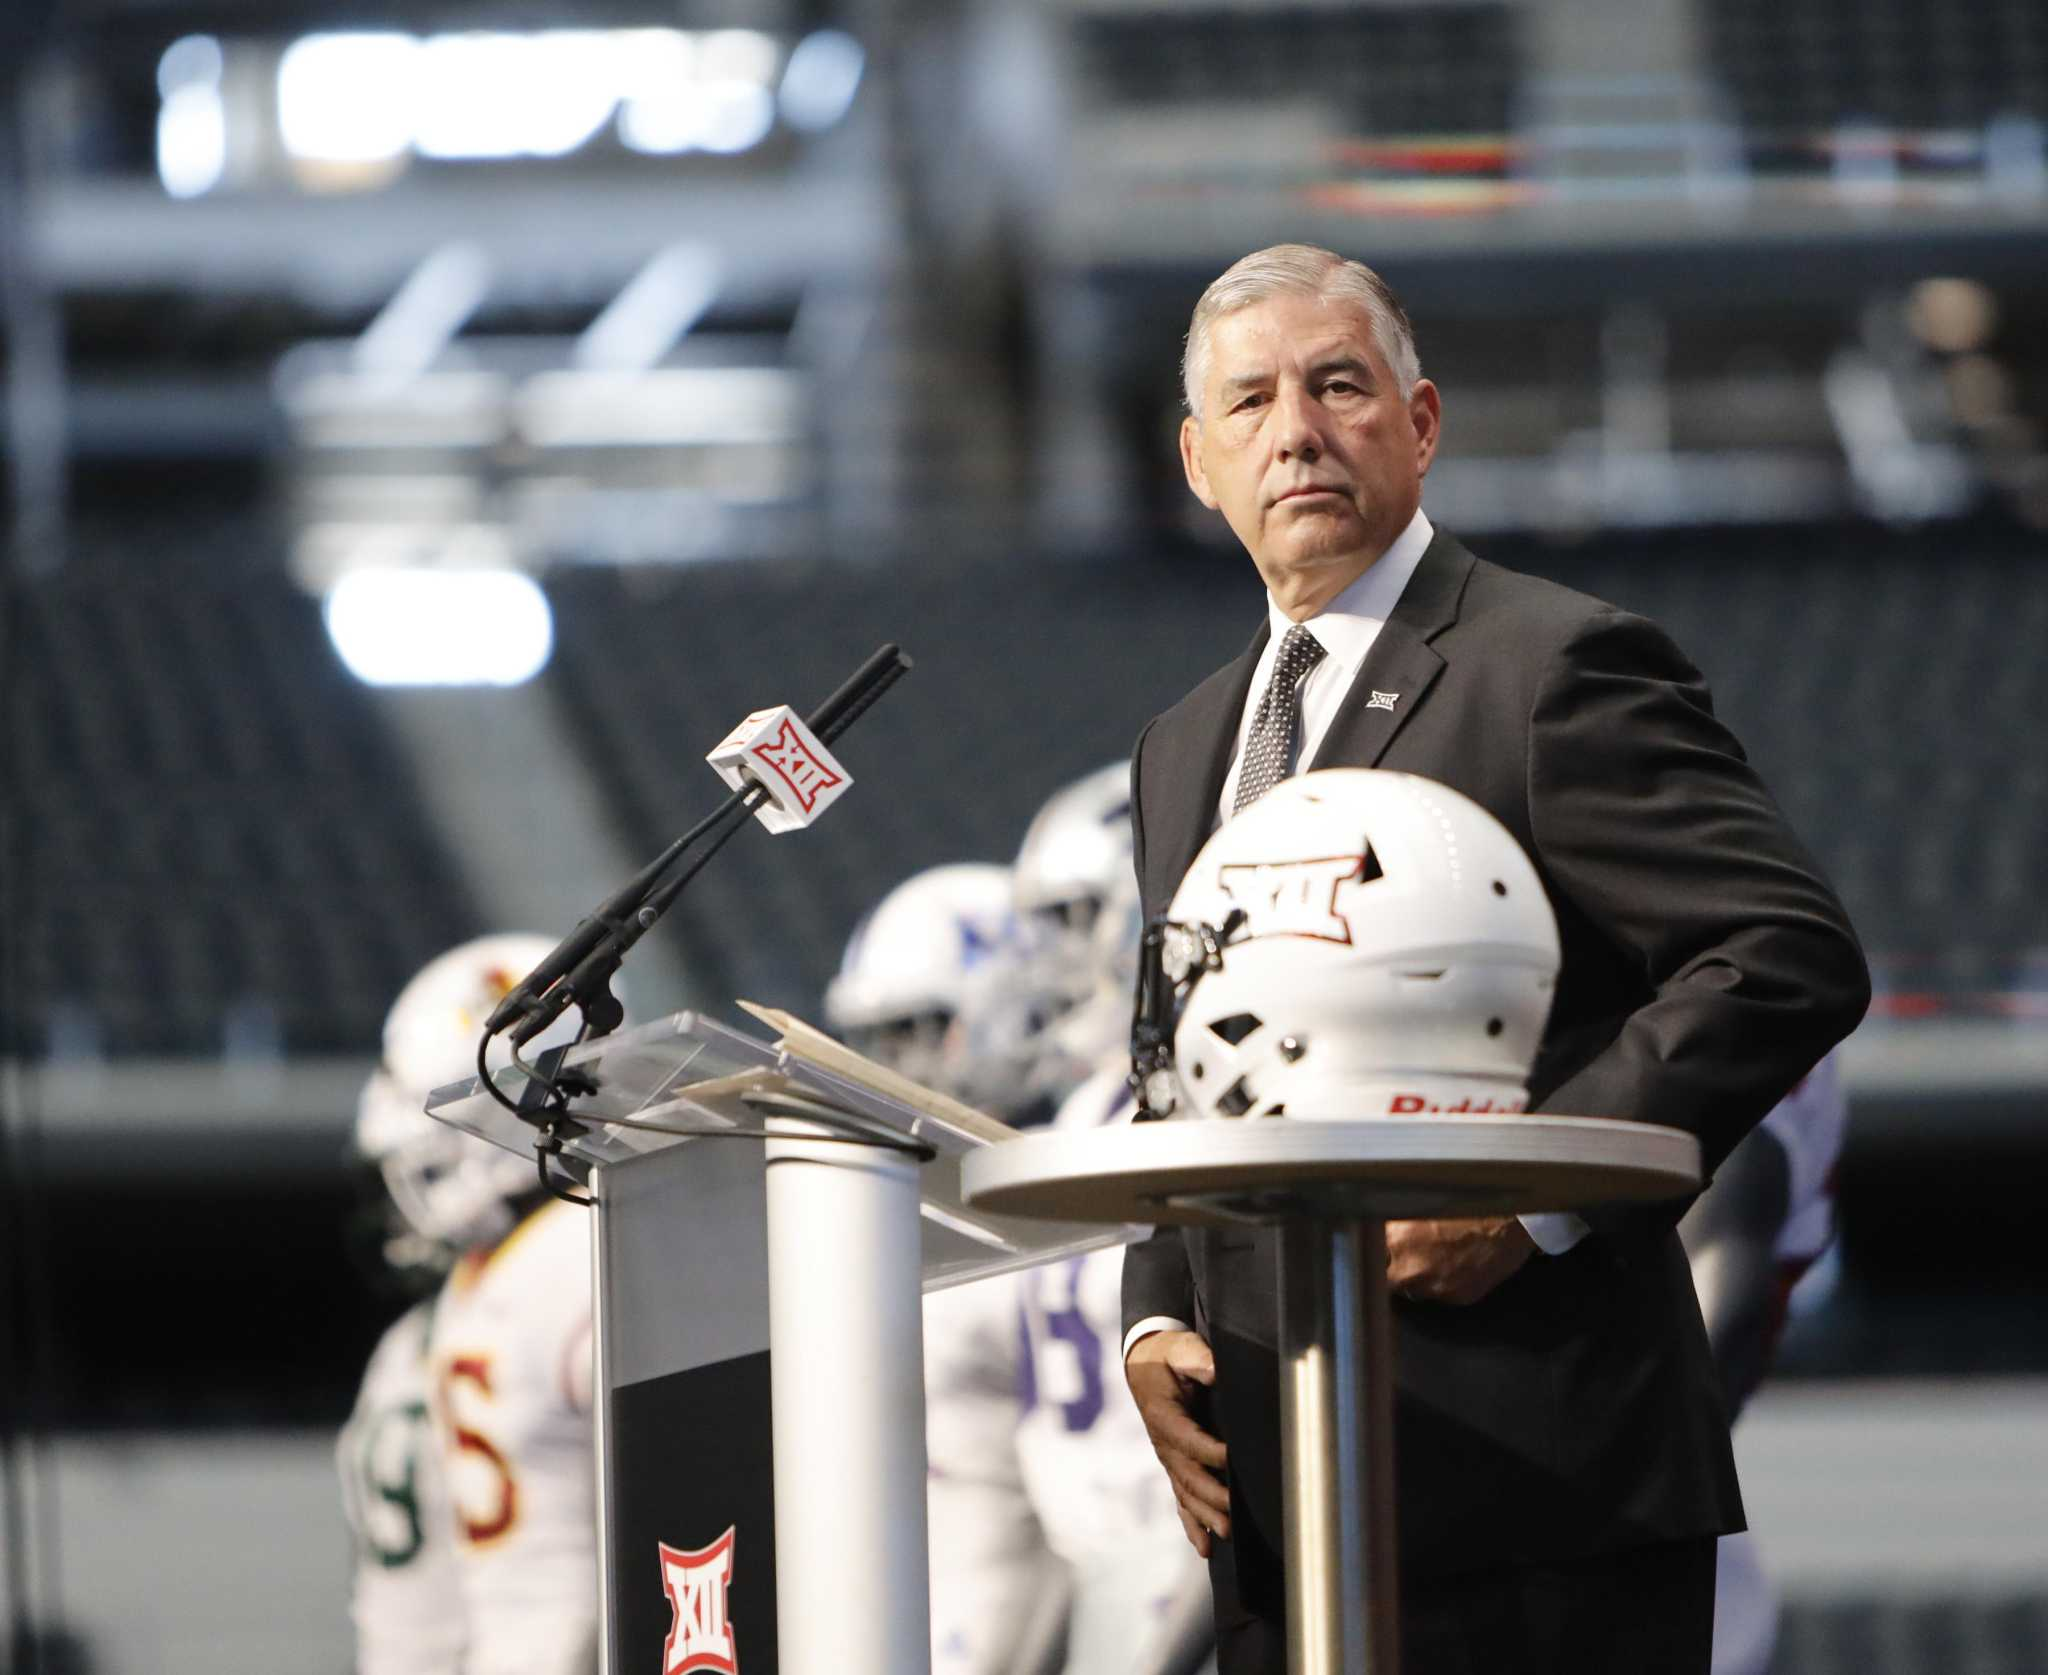 Big 12 expansion? Yes on digital content but no on adding teams